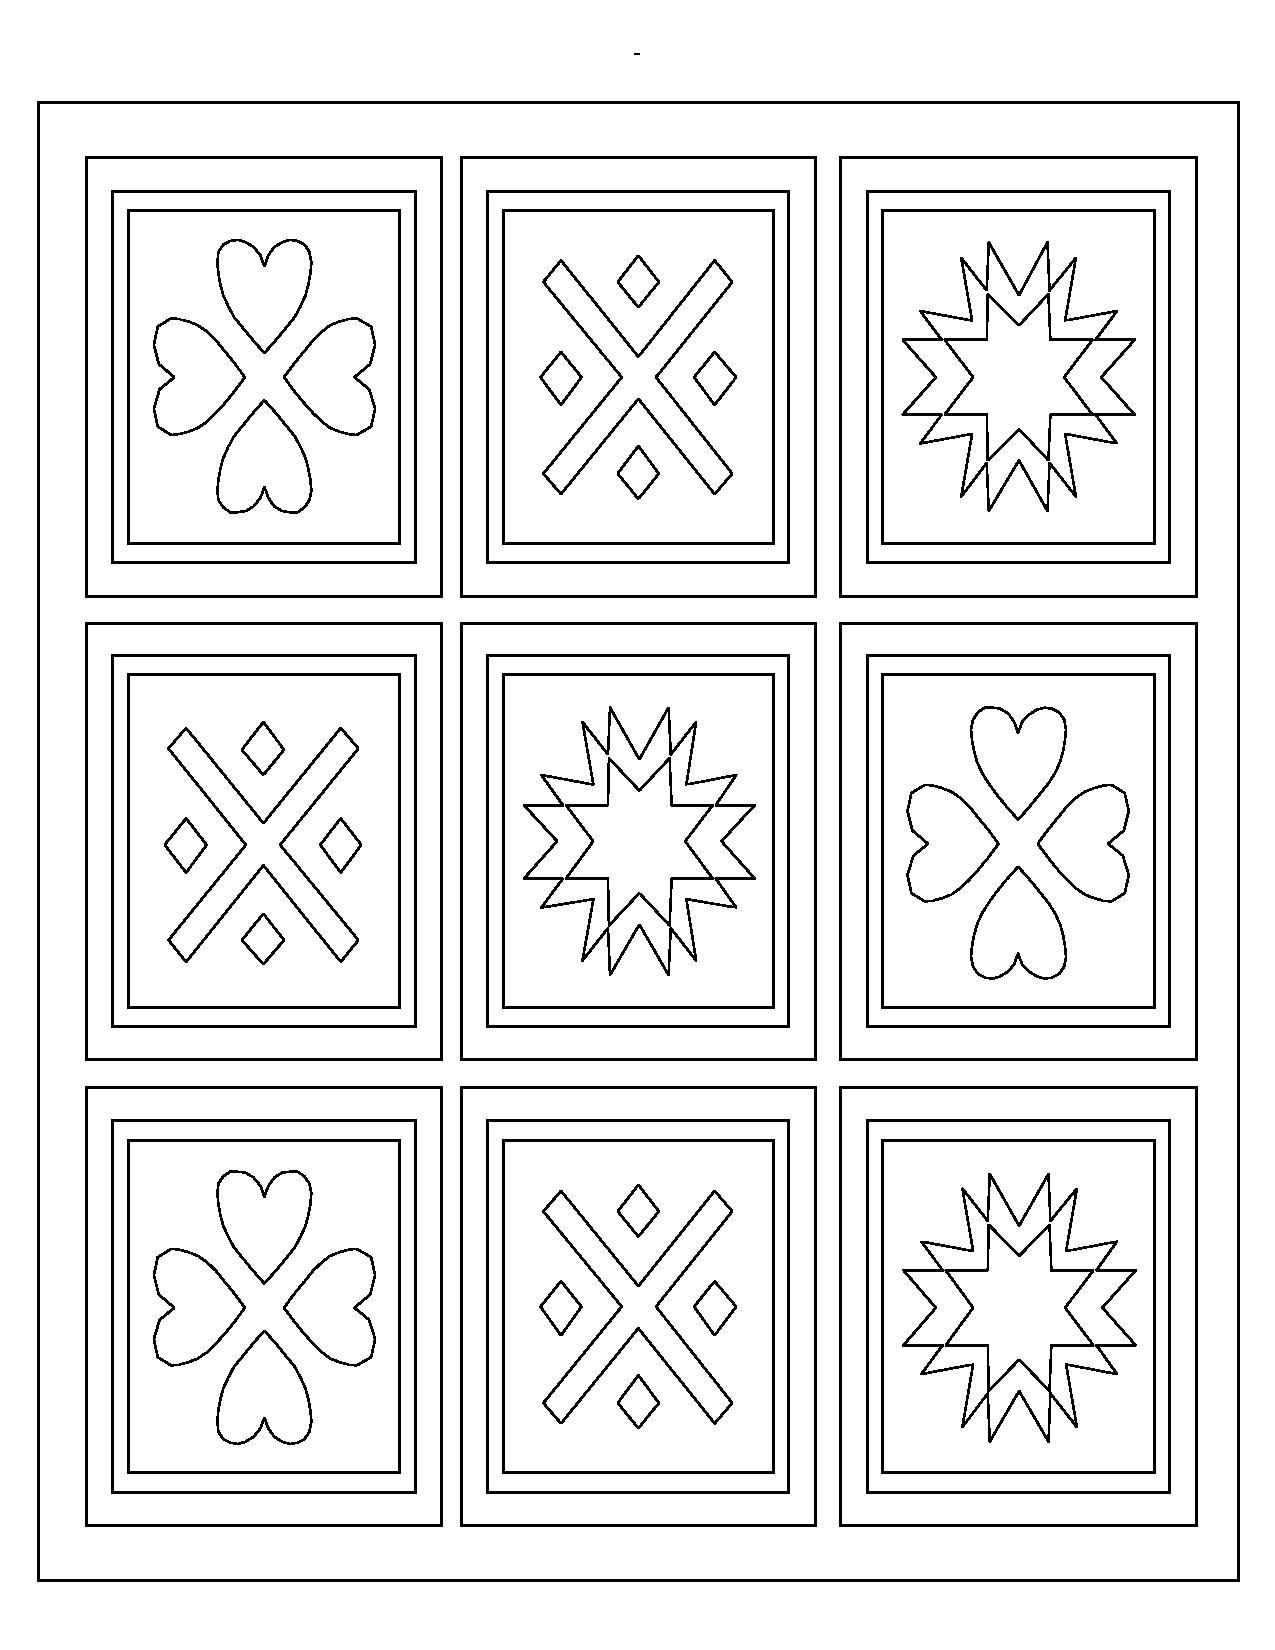 Coloring pages for underground railroad - Quilt Coloring Pages Preschool Google Search